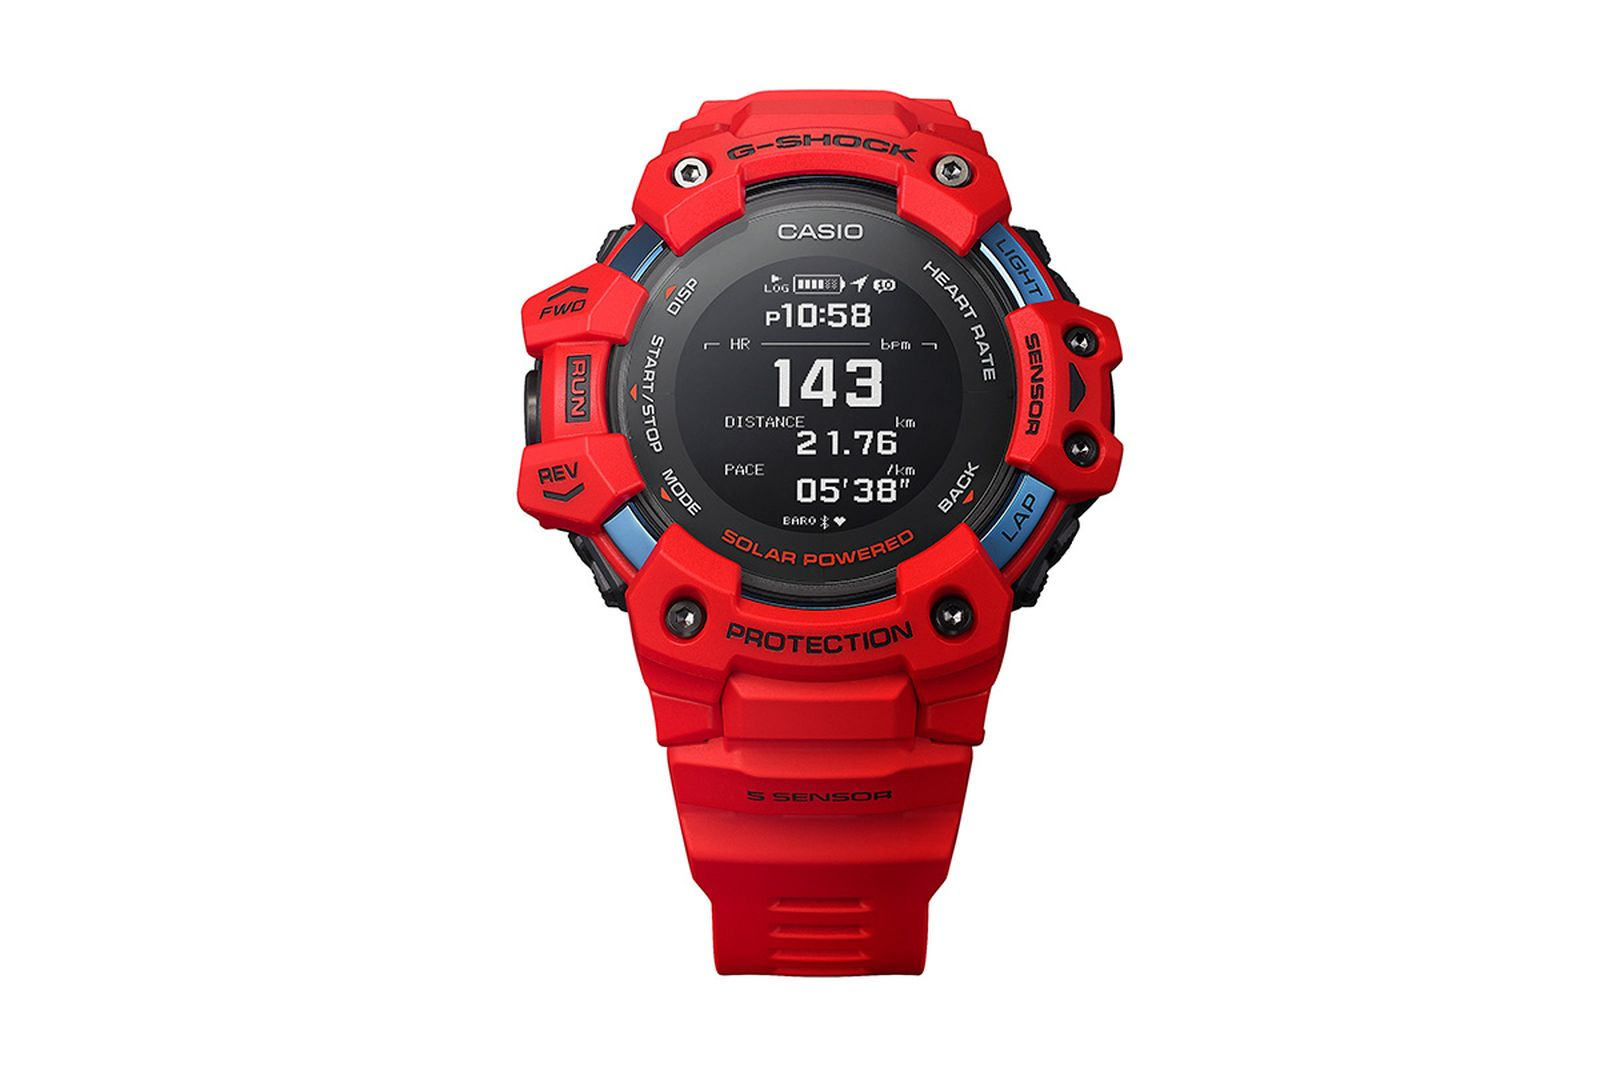 g-shock-heart-rate-monitor-gps-04